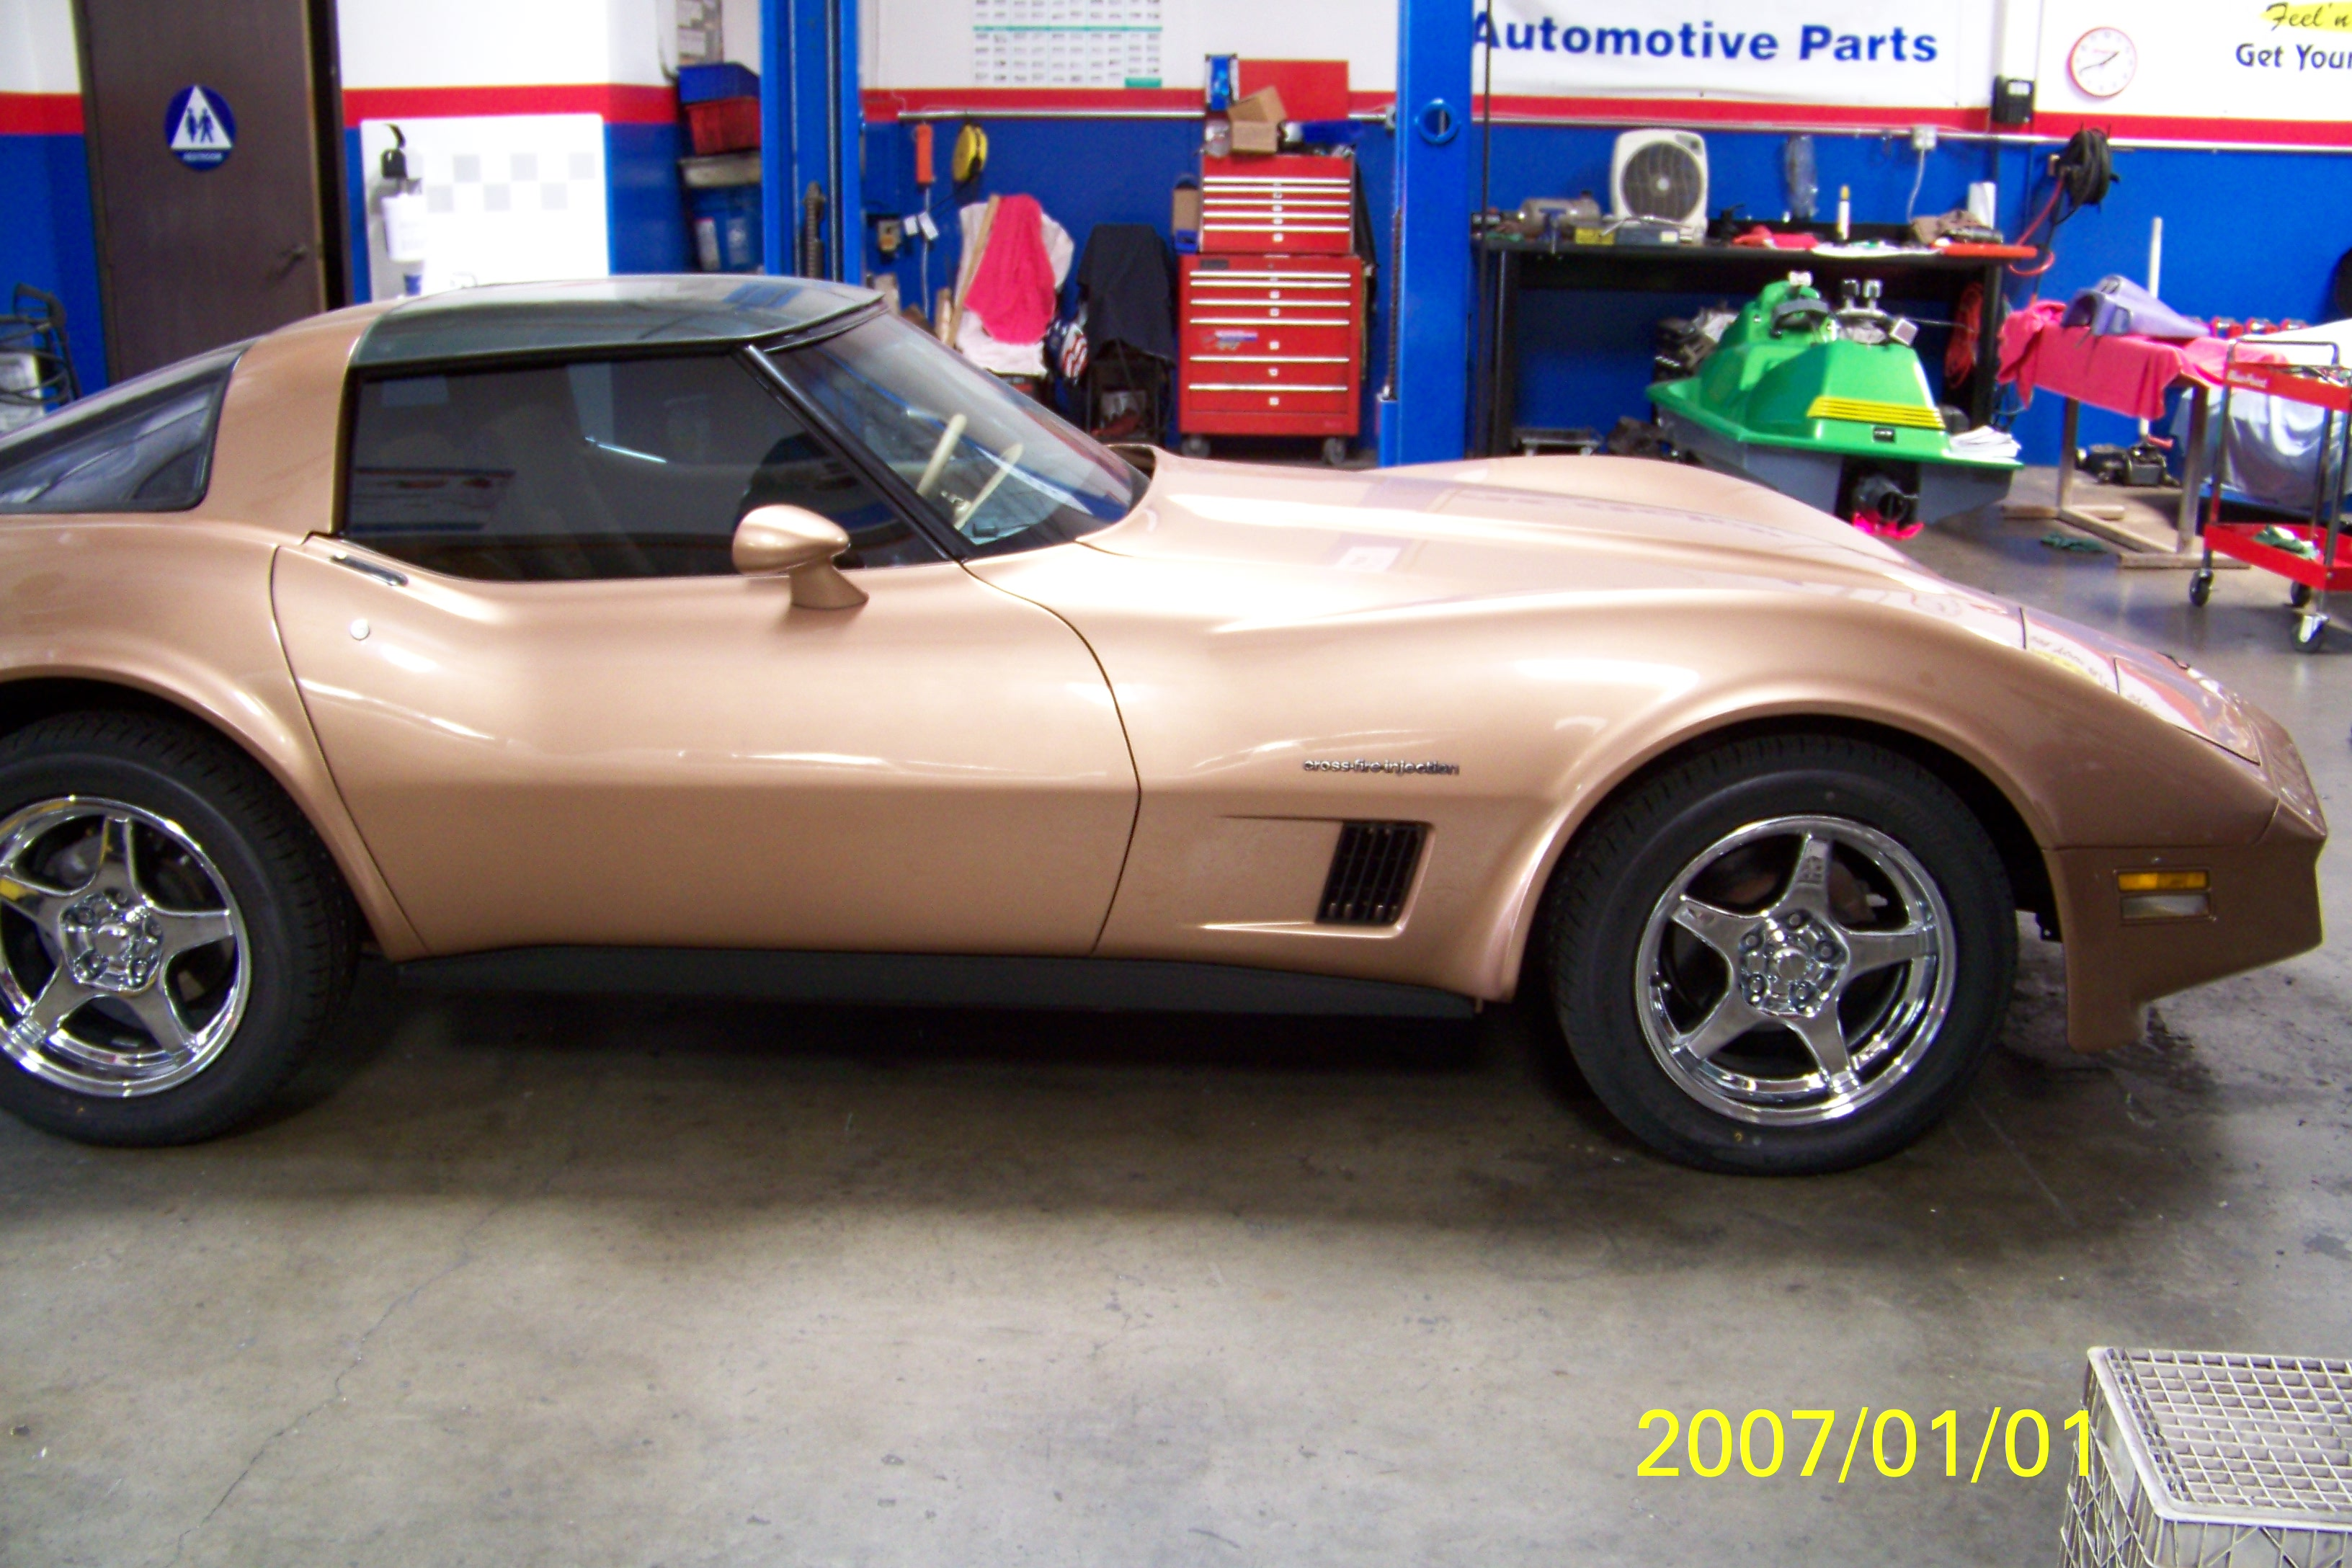 restoration-of-gold-car-098